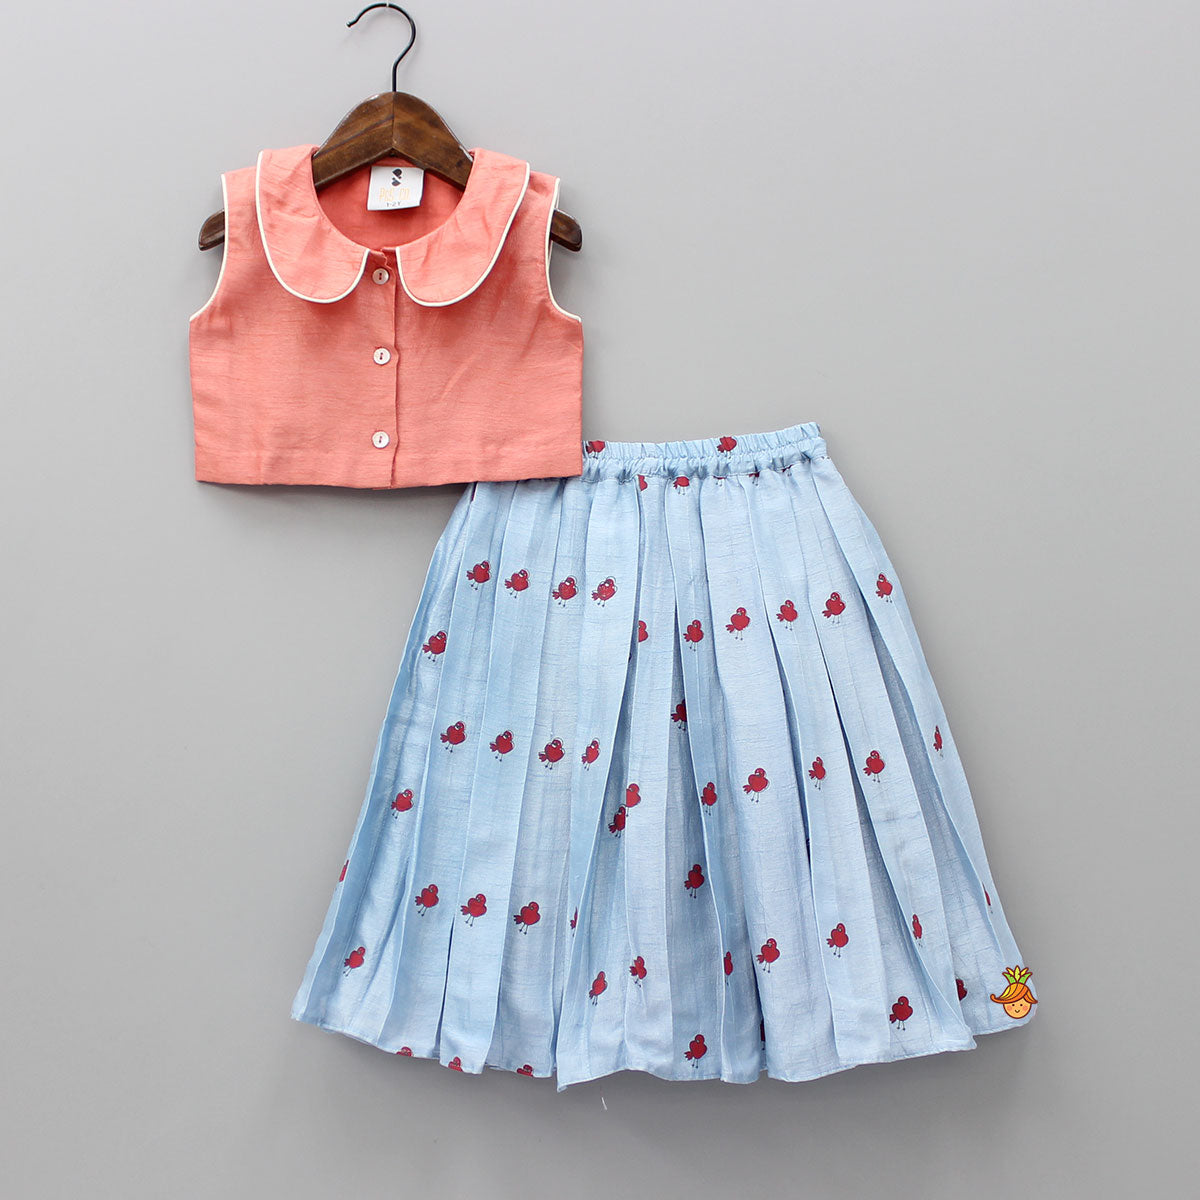 Pre Order: Peach Crop Top With Blue Skirt